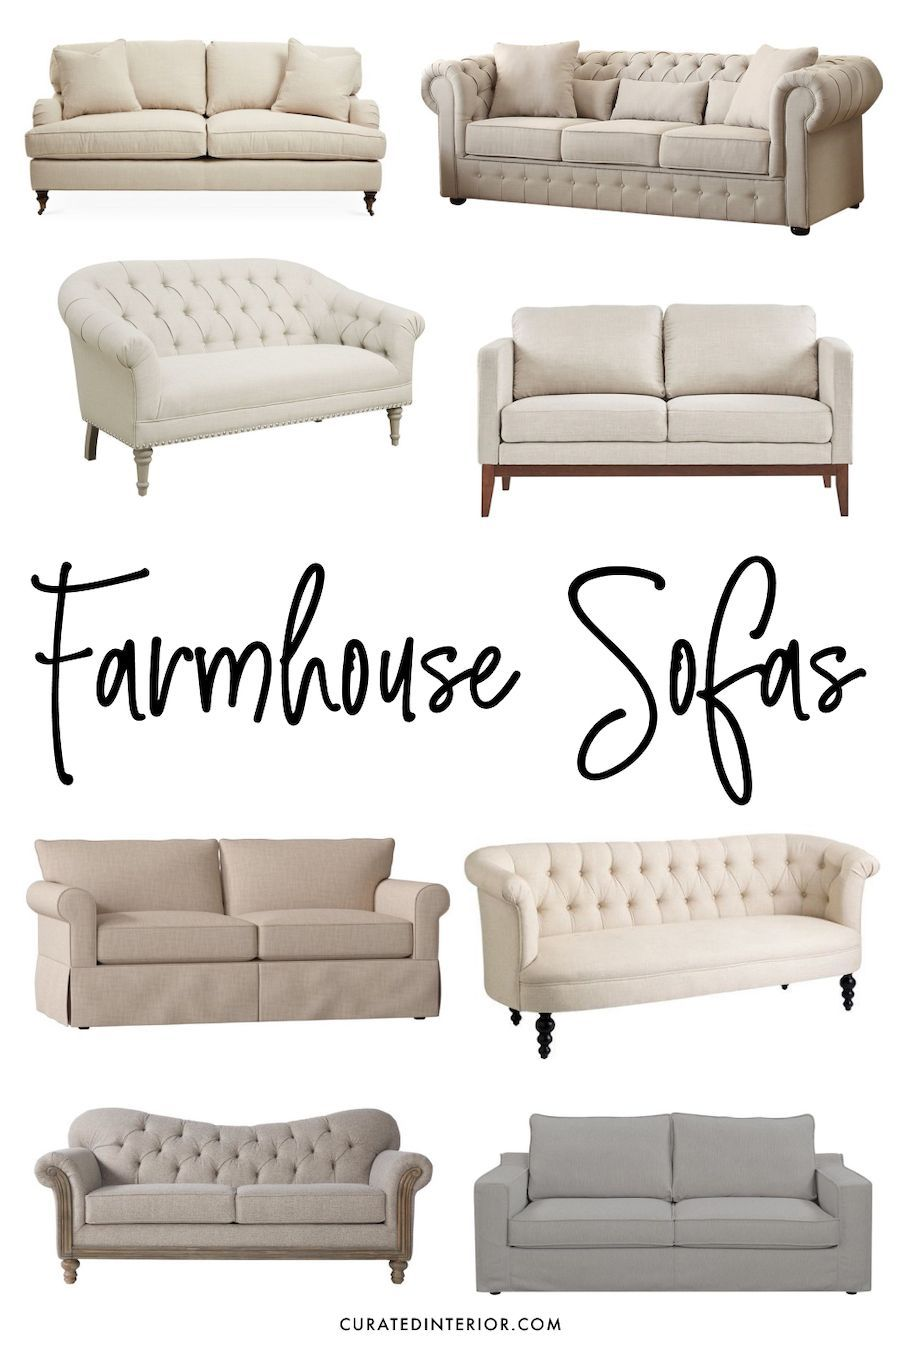 Farmhouse Sofas For All Budgets Shopping For A Modern Farmhouse